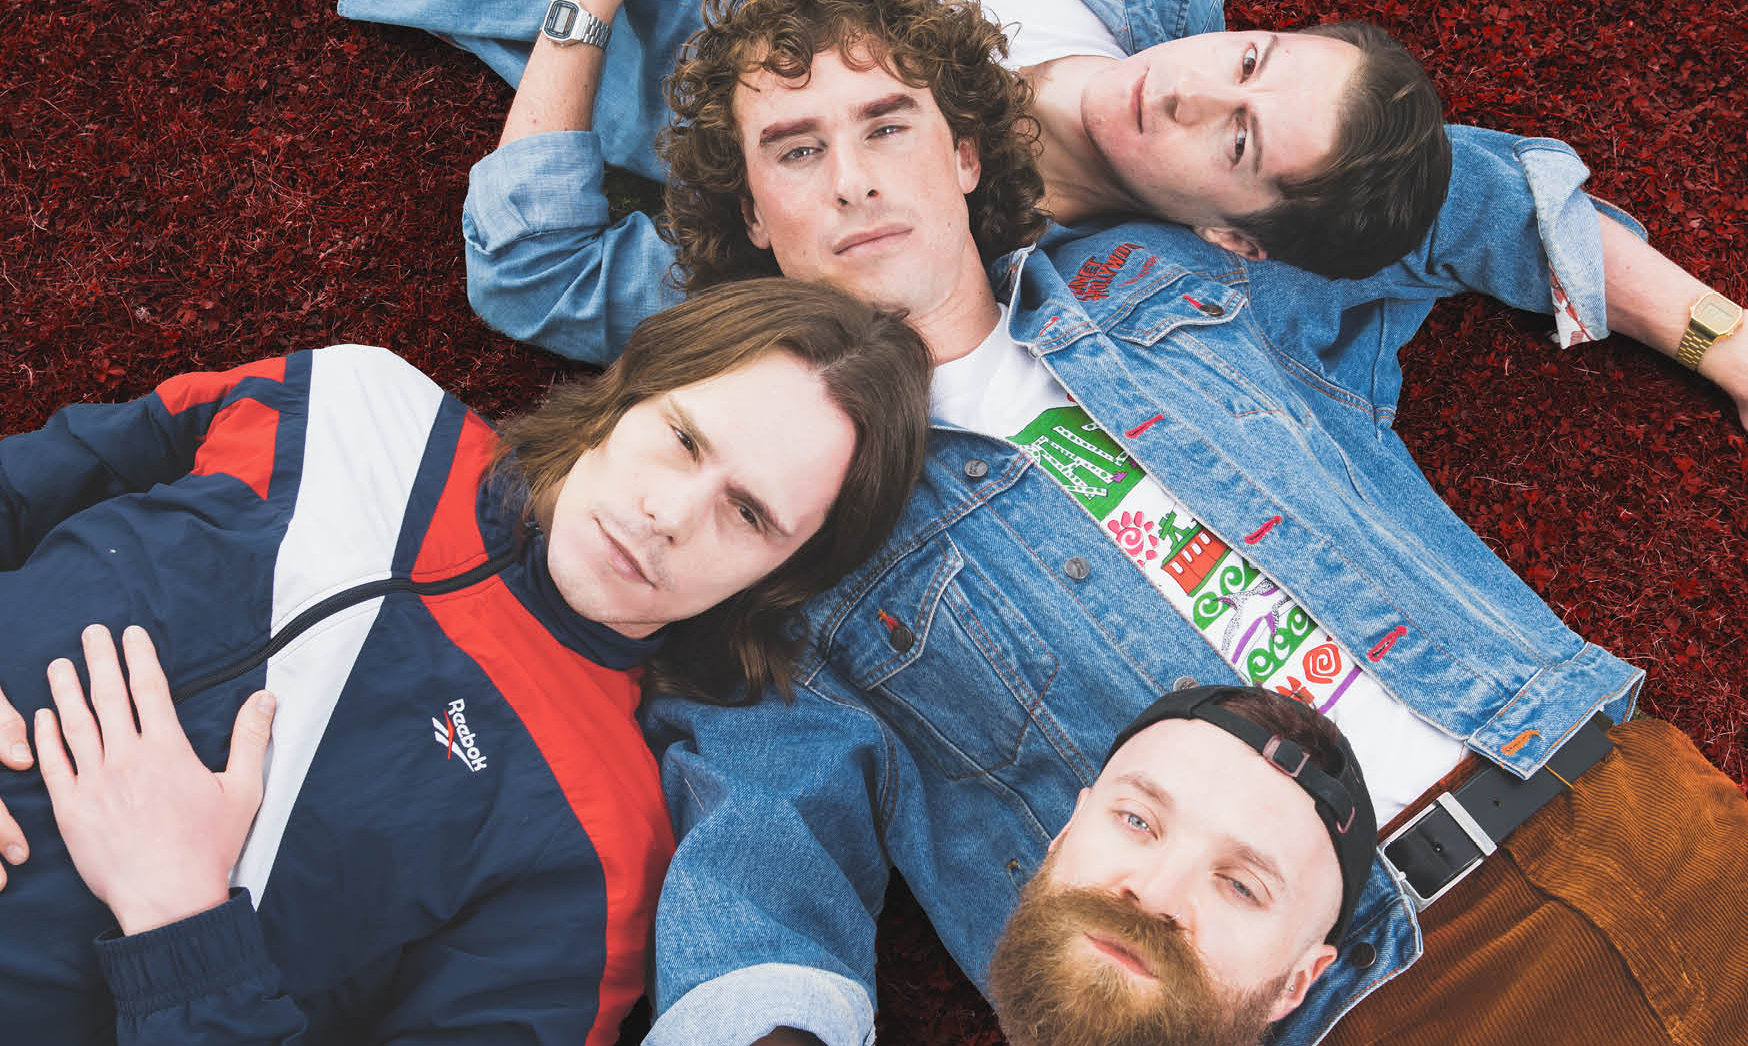 LISTEN: Don Broco's Raucously Vulnerable New Track 'Endorphins'